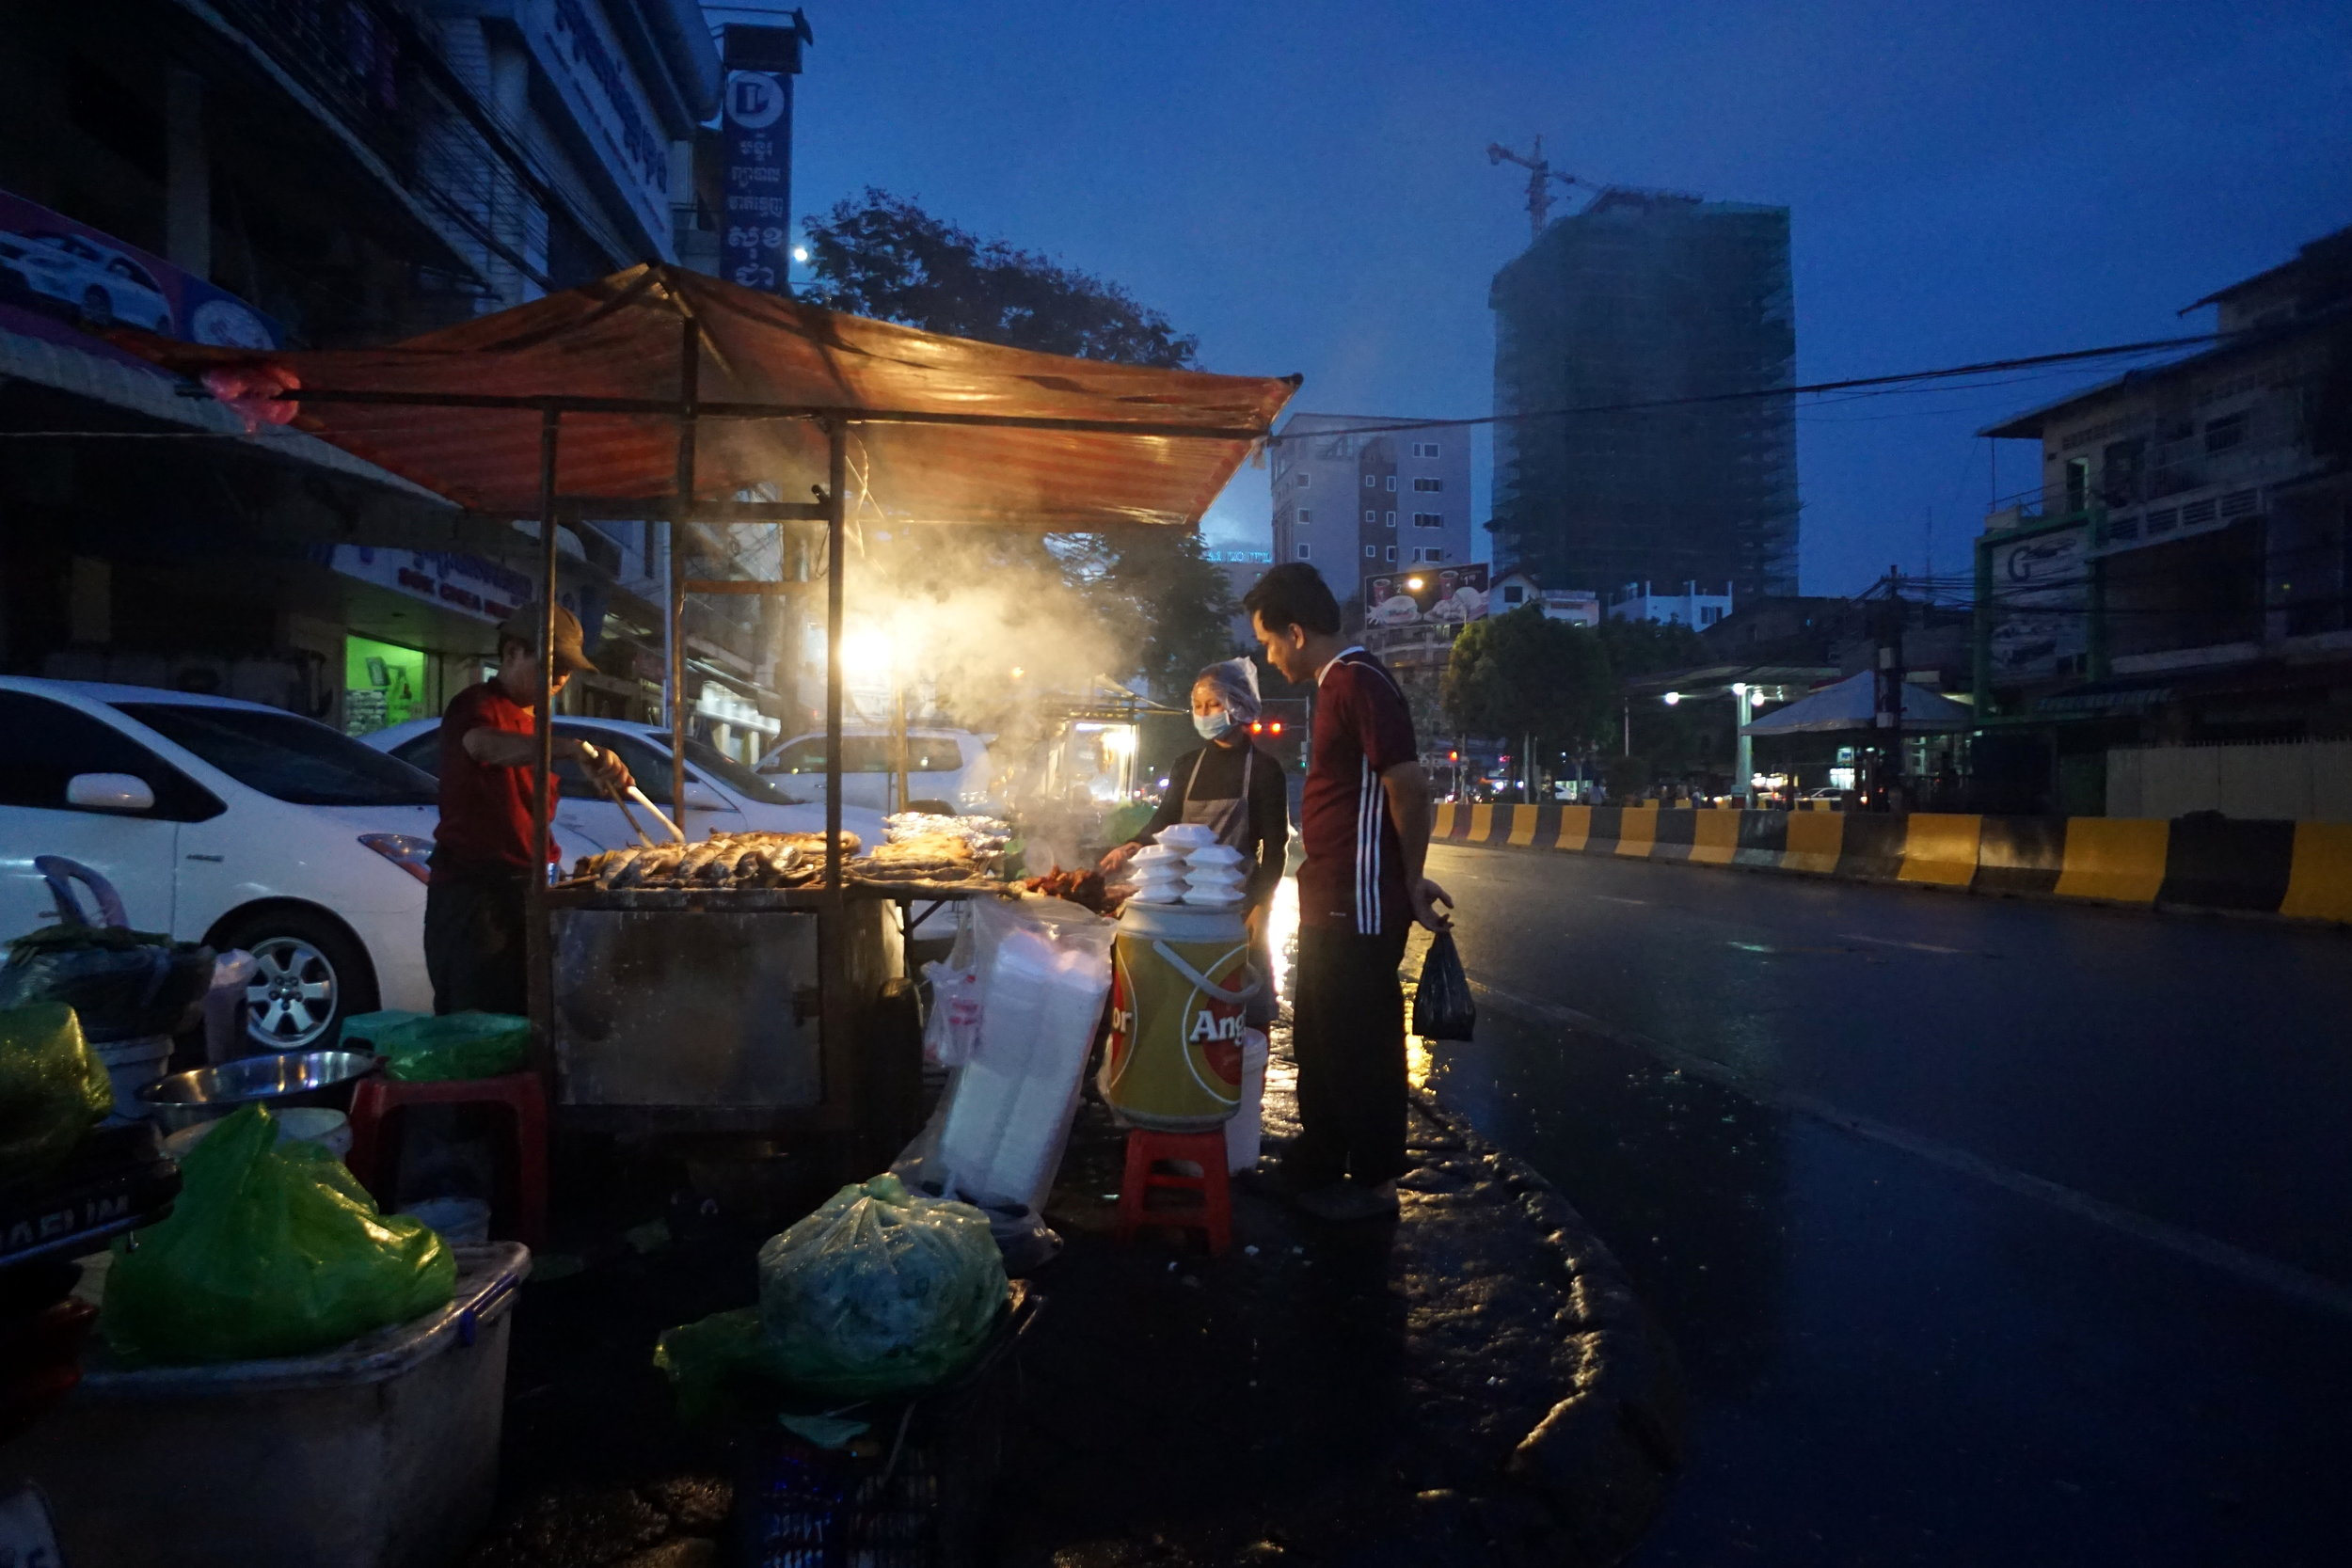 nighttime Phnom Penh food tour